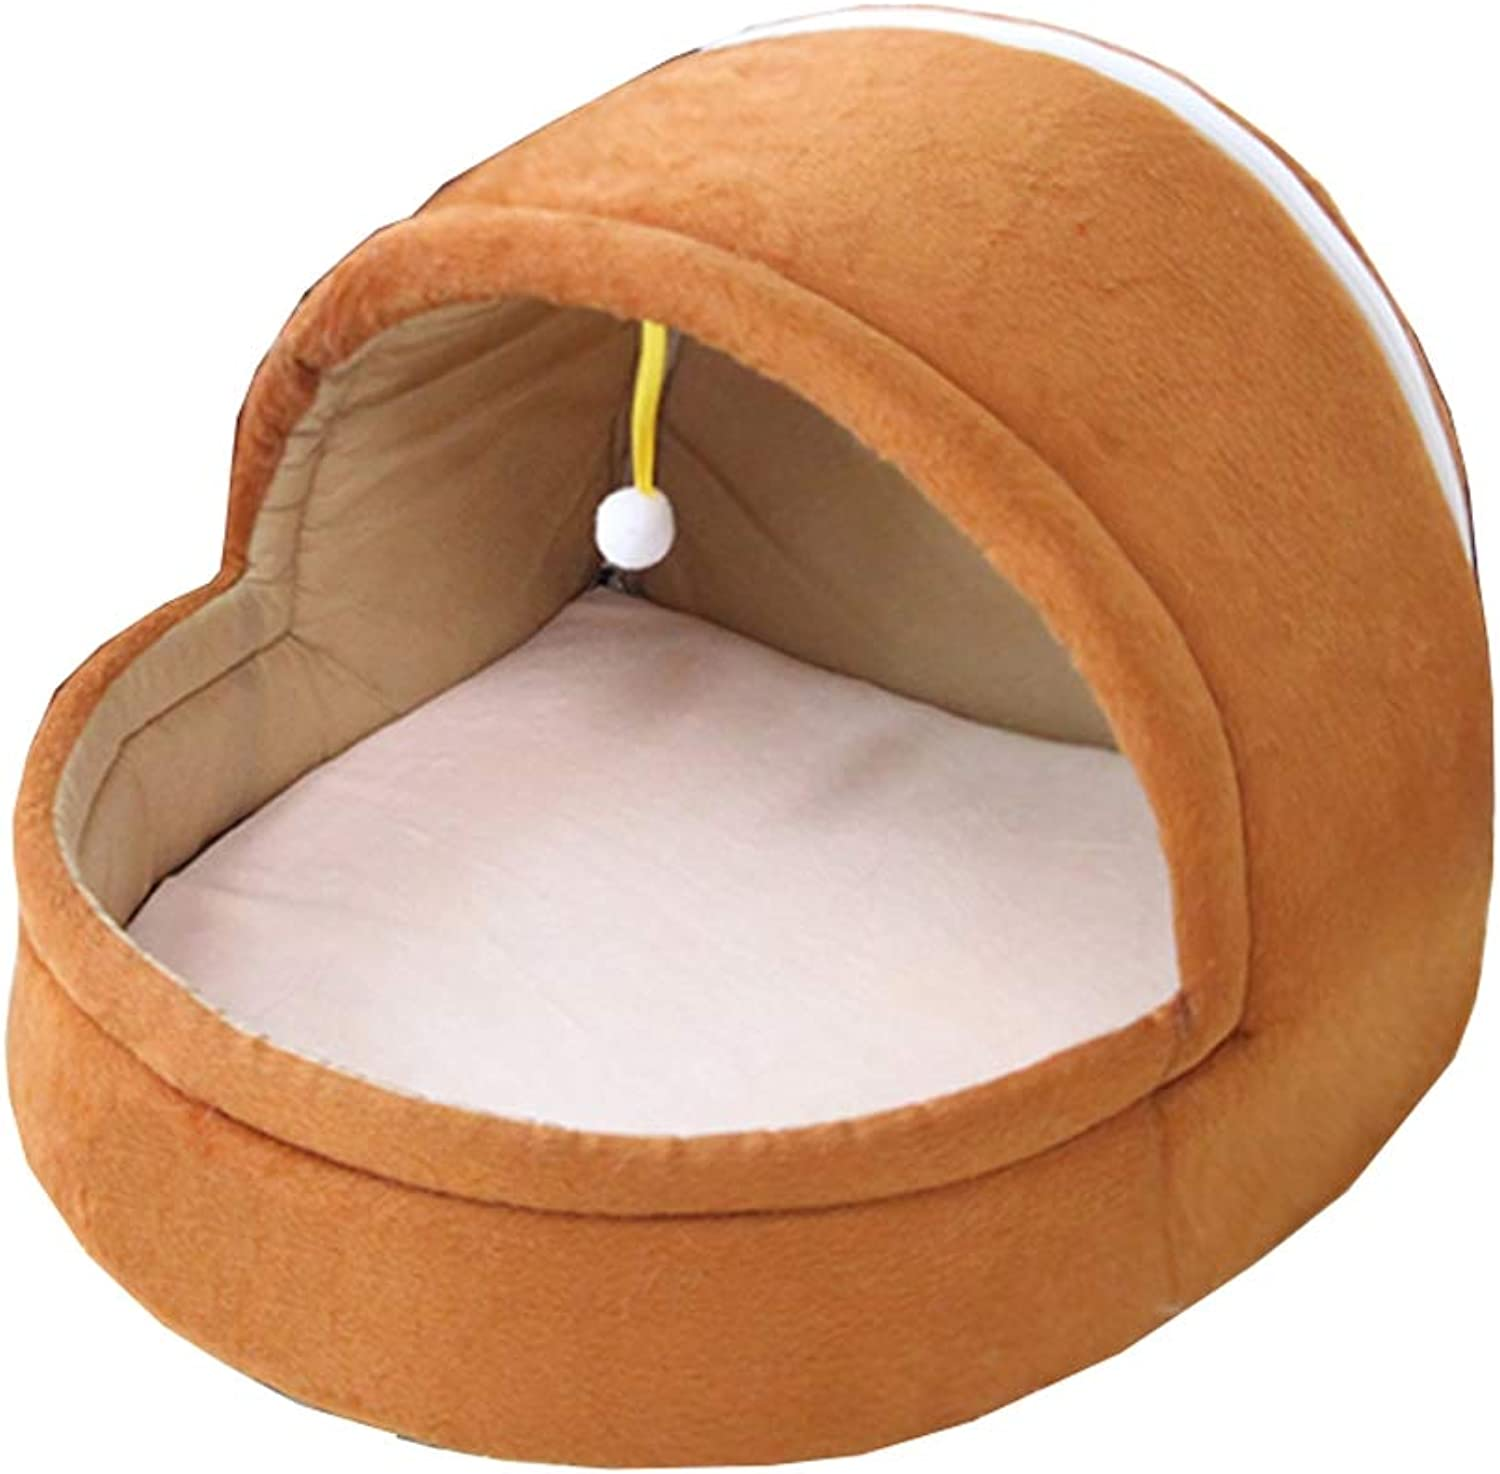 CHEN. Pet bedyurt dog bed removable and washable four seasons universal cat bed summer dualuse pet supplies,Brown,S